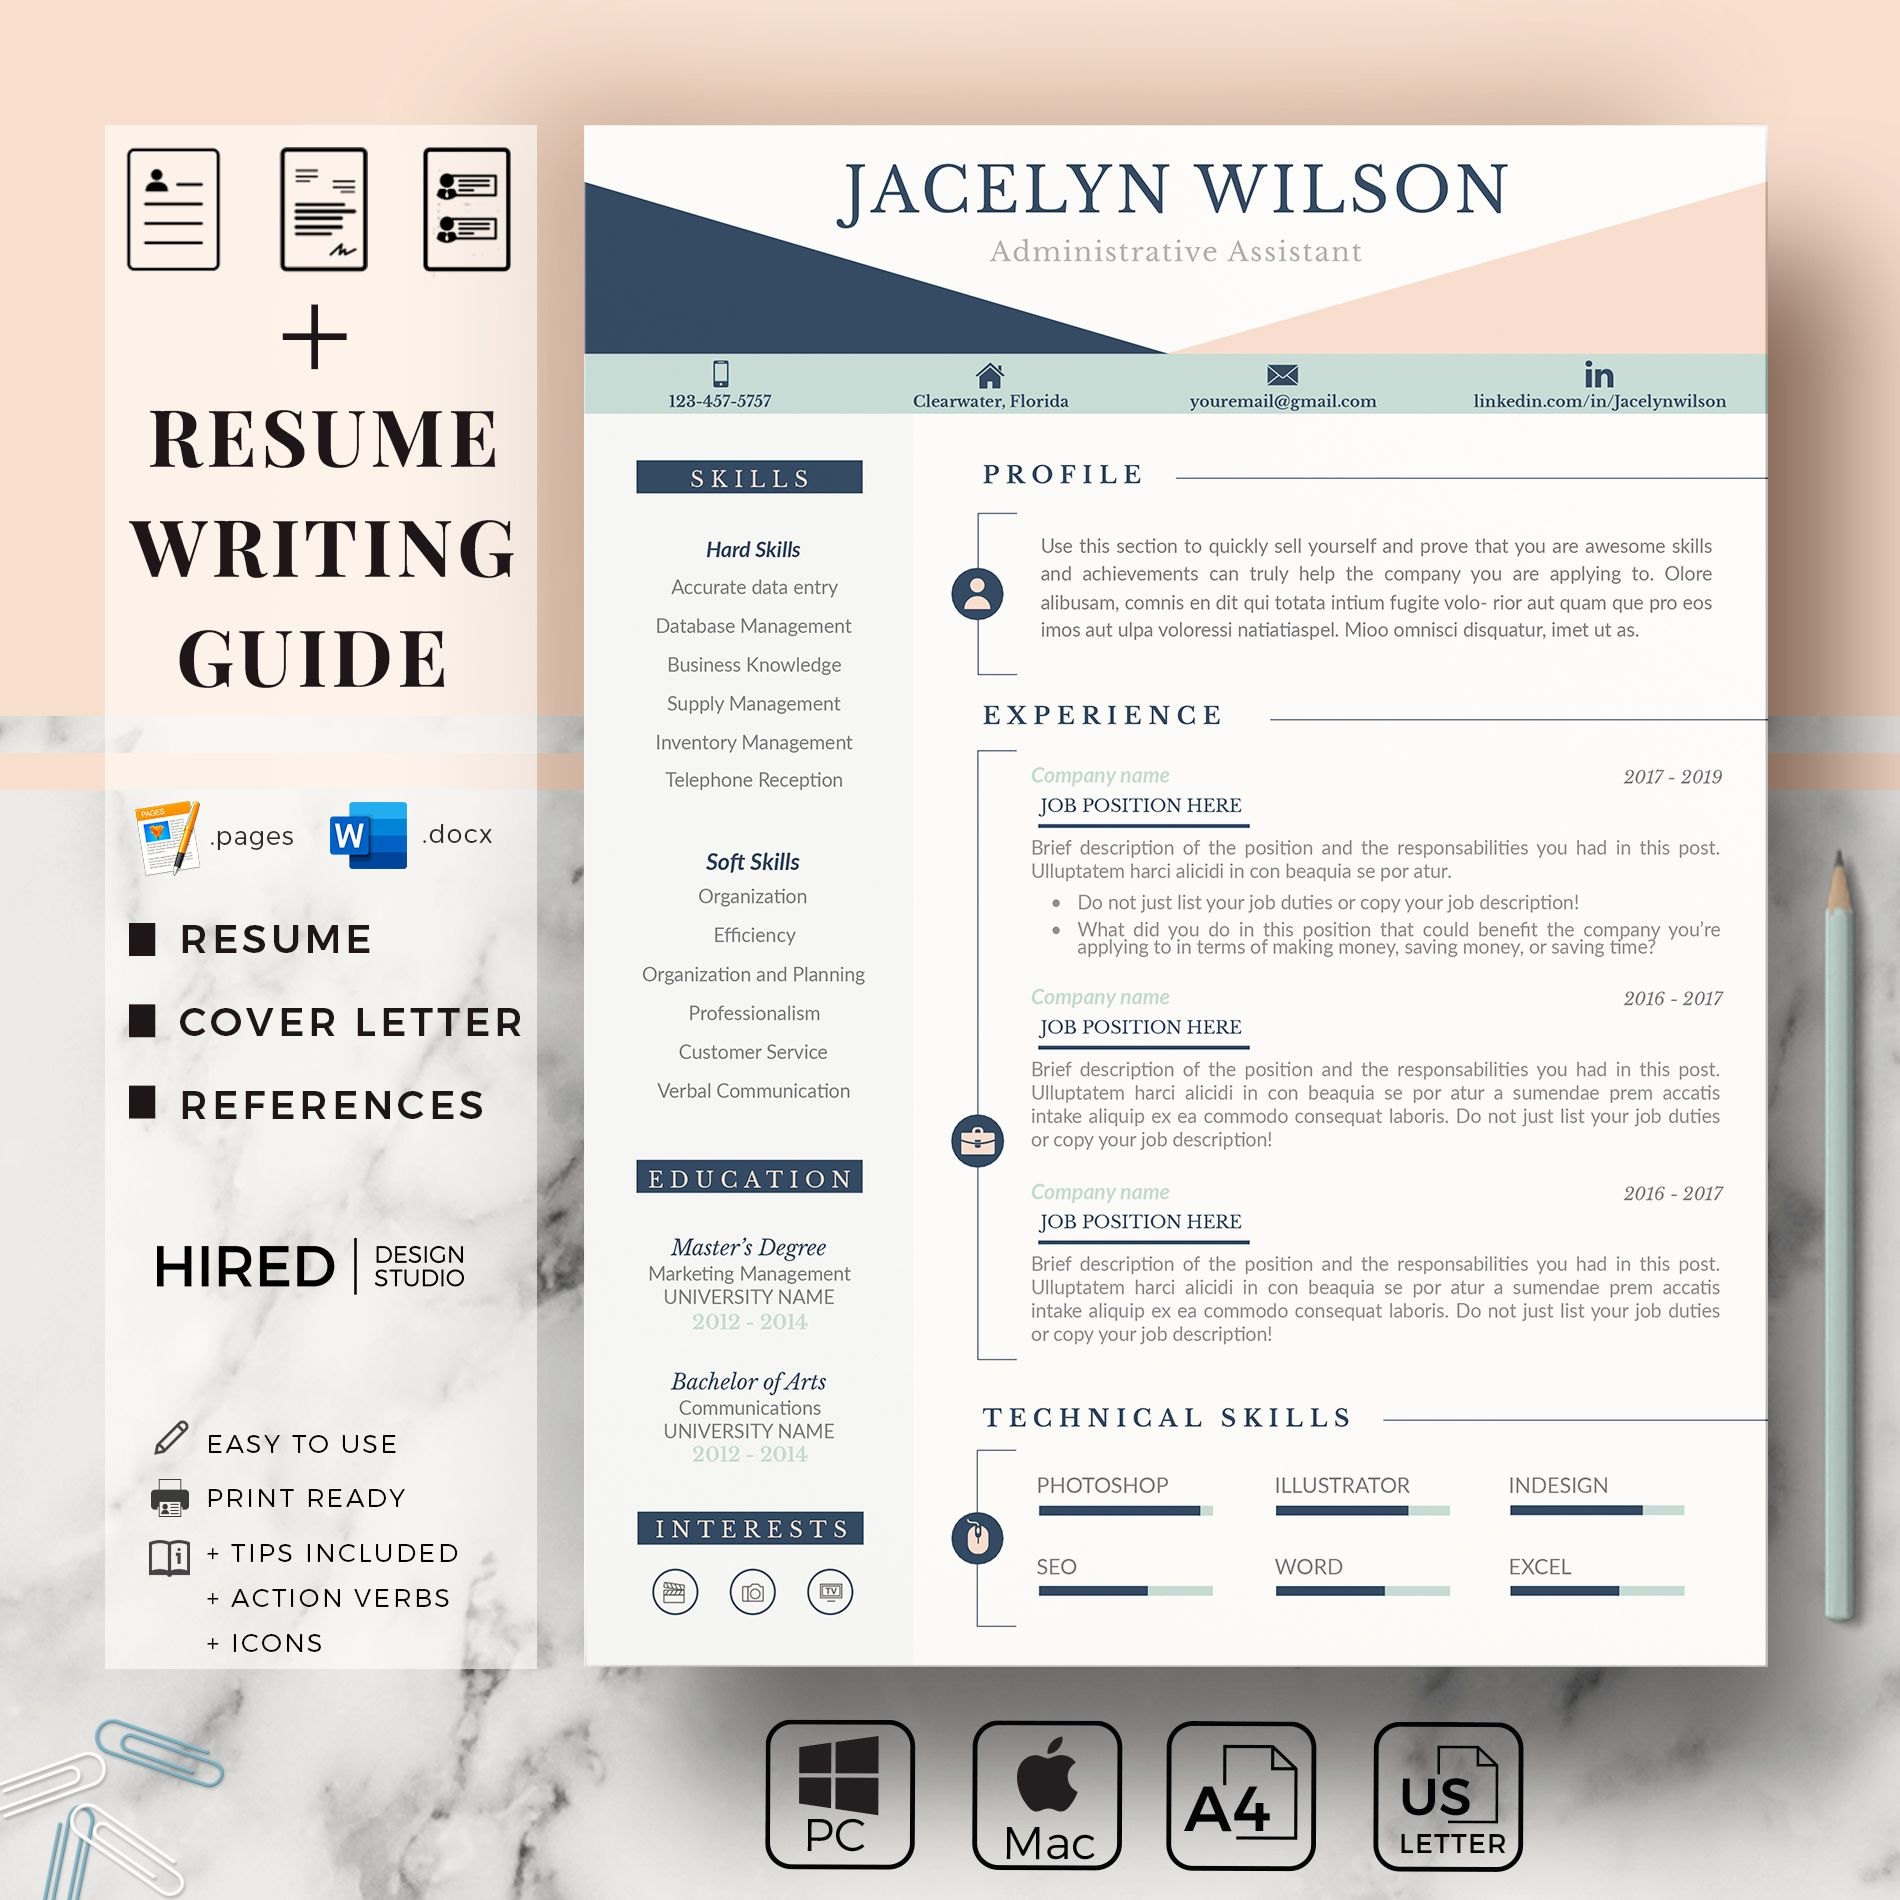 Professional Resume for Administrative. College Resume for